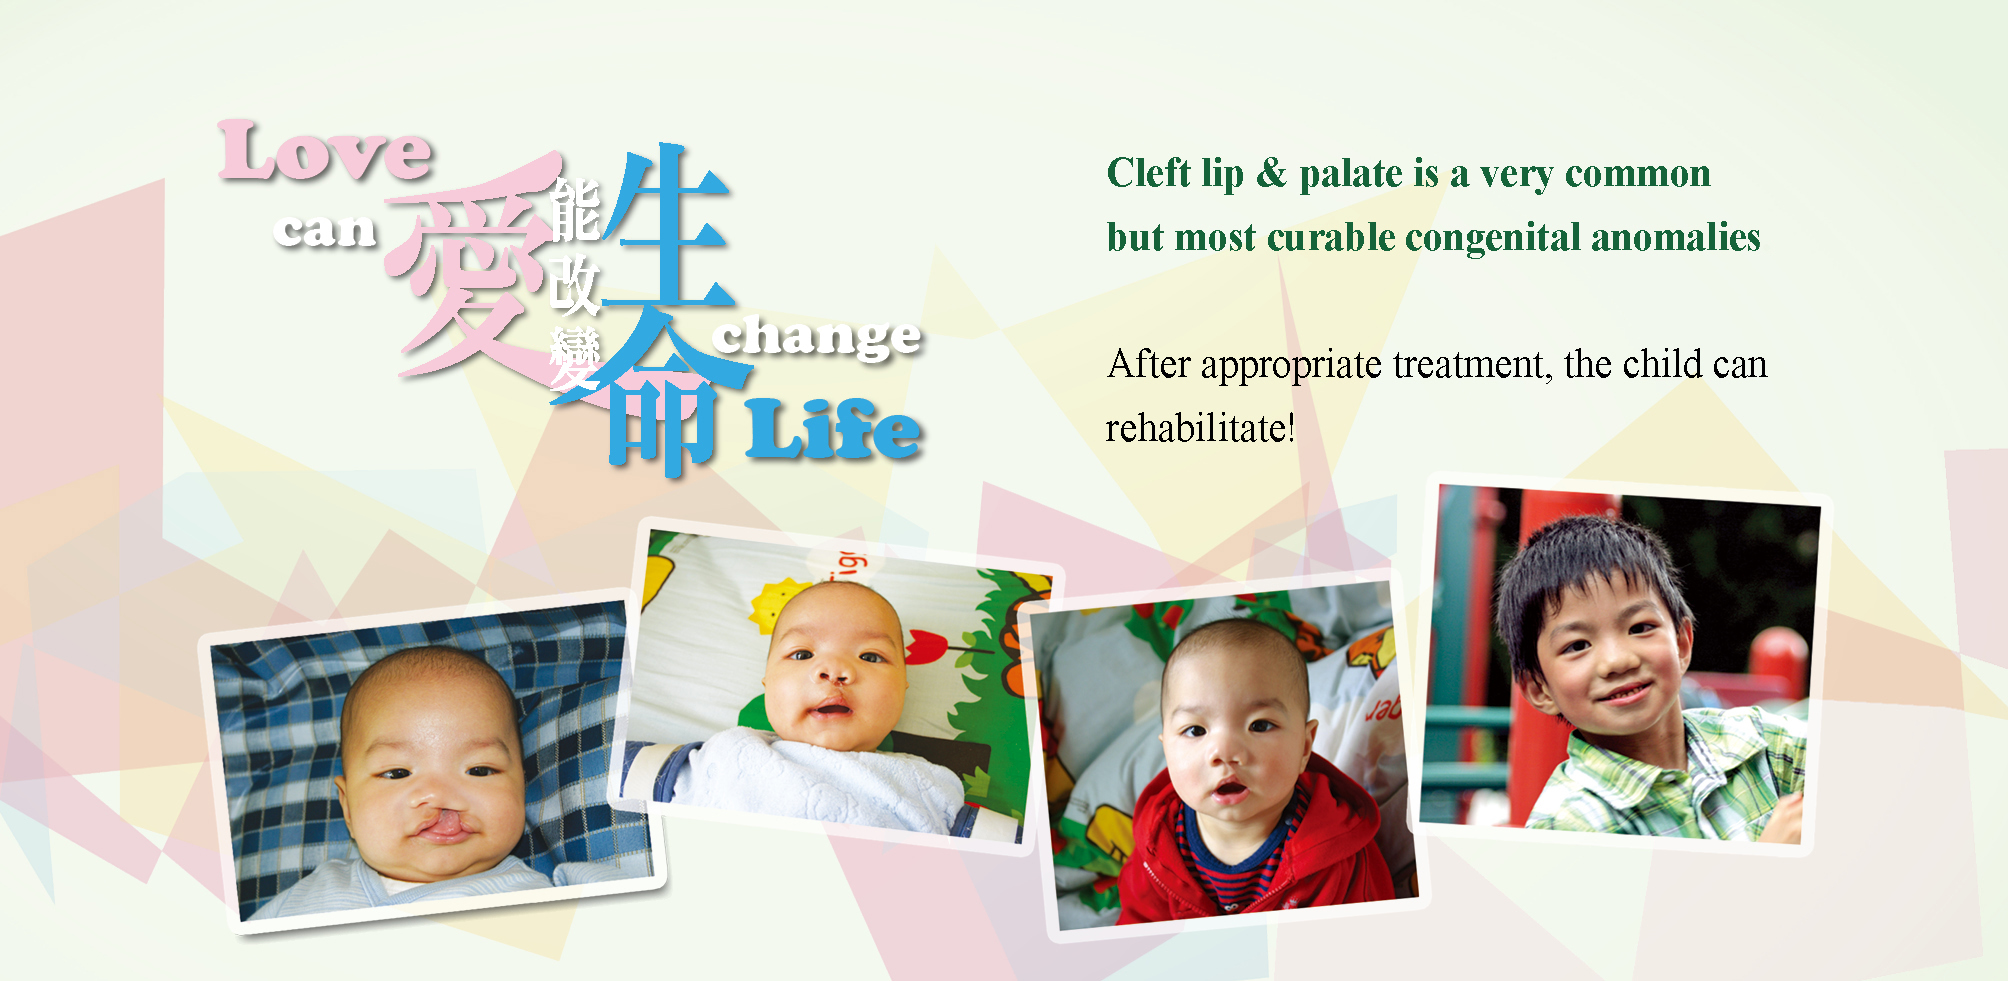 https://www.cleftlip.org.hk/wp-content/uploads/2020/07/20200709_banner_desktop2-copy.jpg